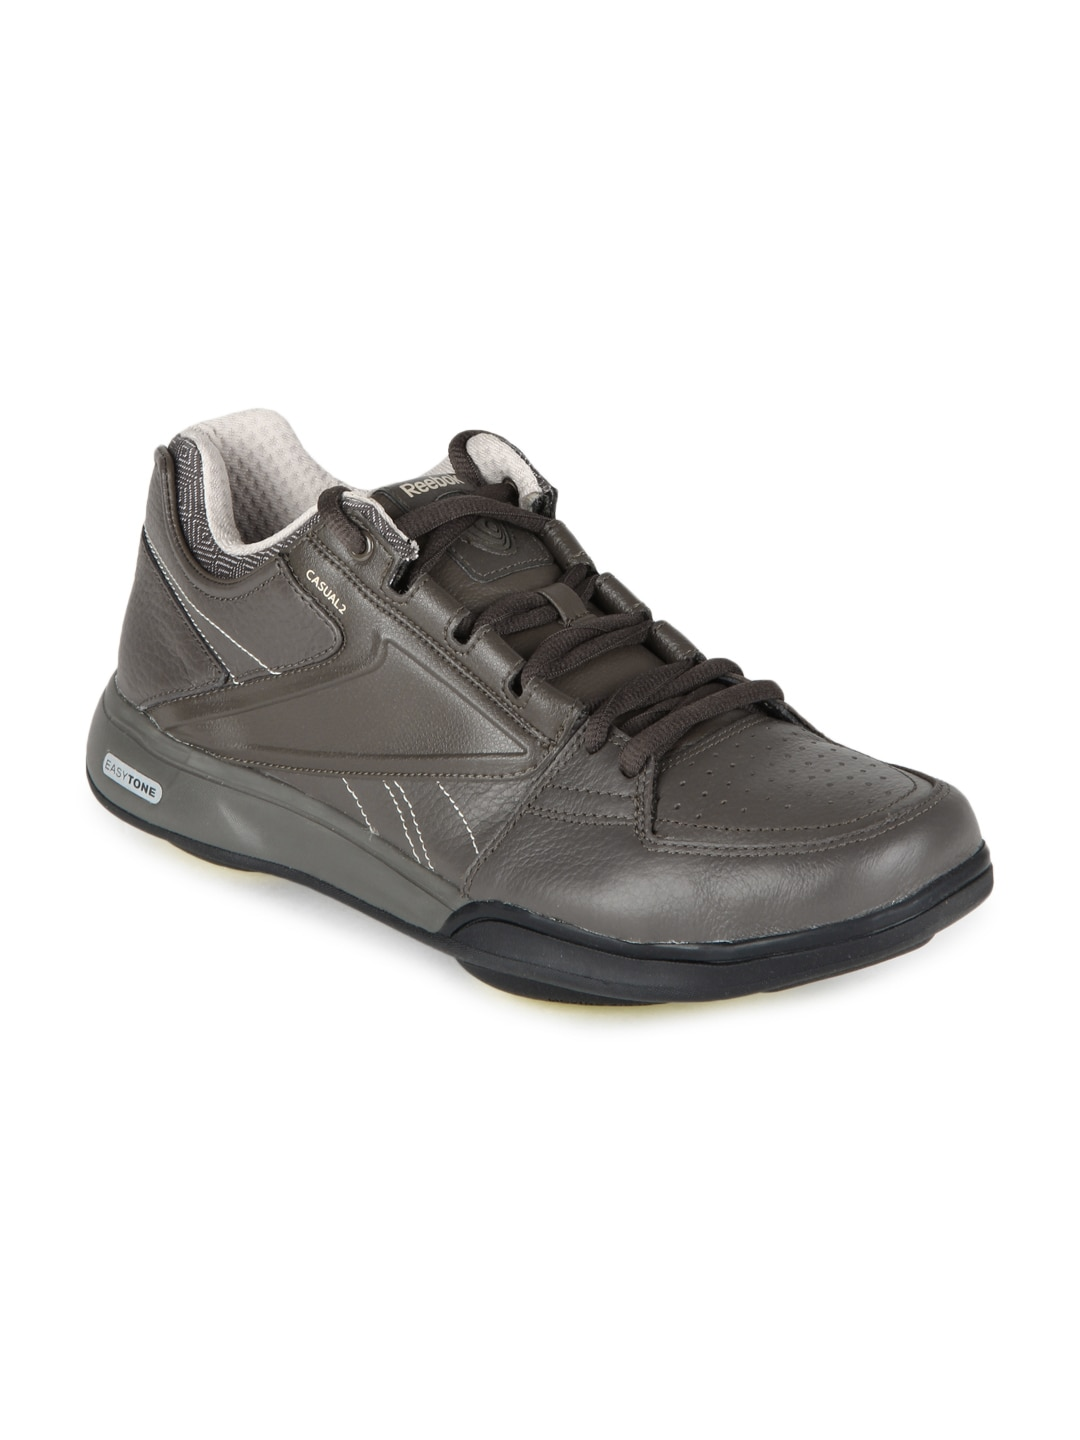 a272f5e823ba Reebok j84614 Men Brown Easytone Casual Ii Sports Shoes- Price in India